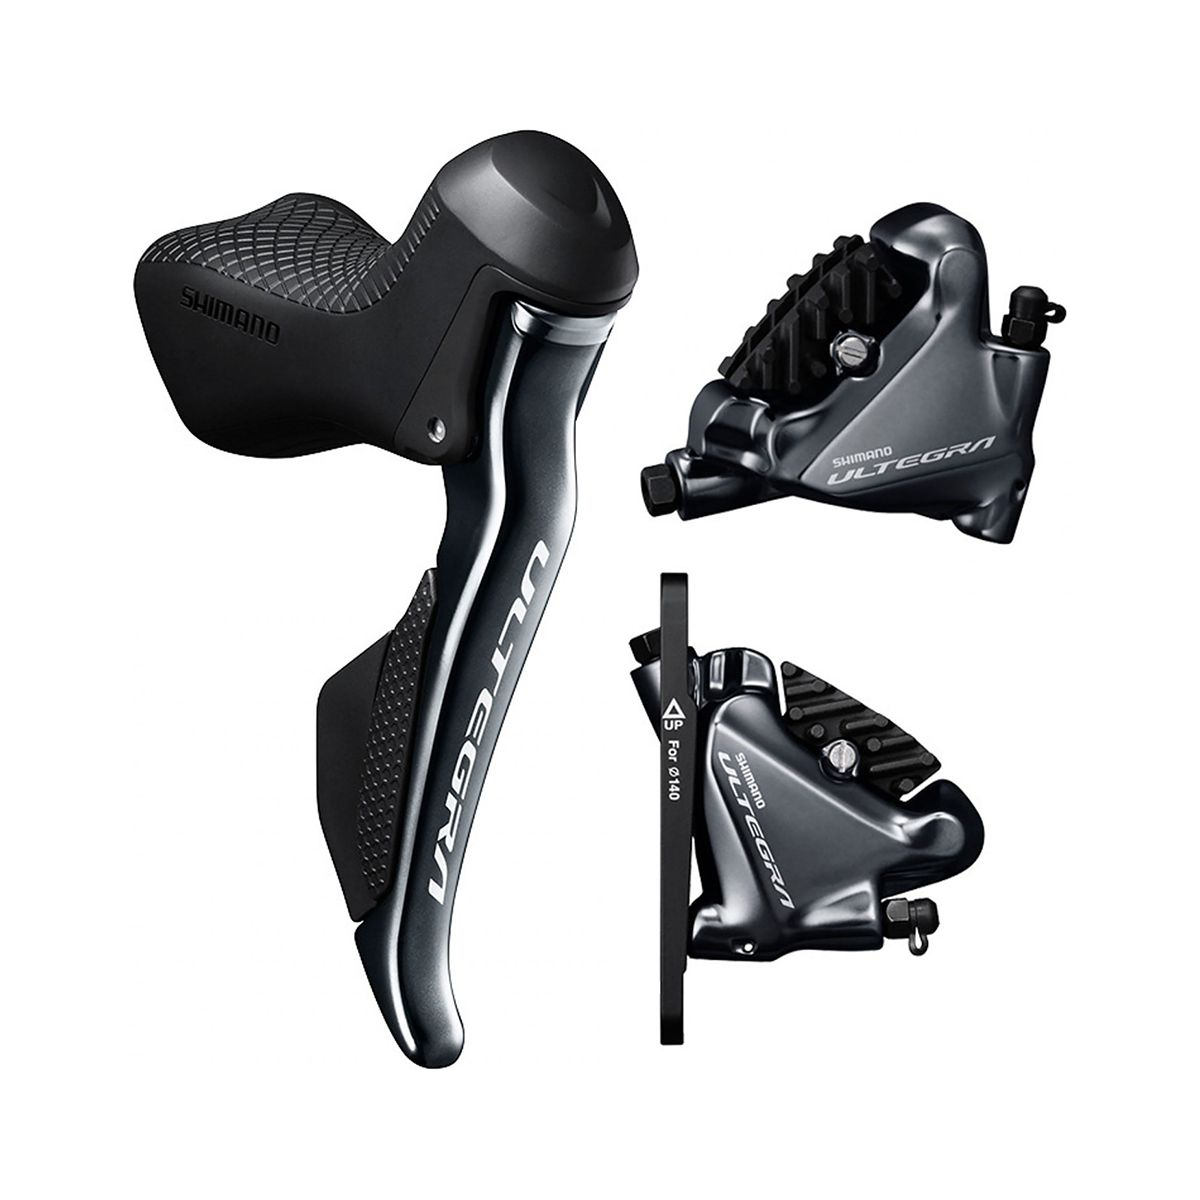 Di2 ST-R8070 brake/shift lever combination + BR-R8070 hydraulic disc brake